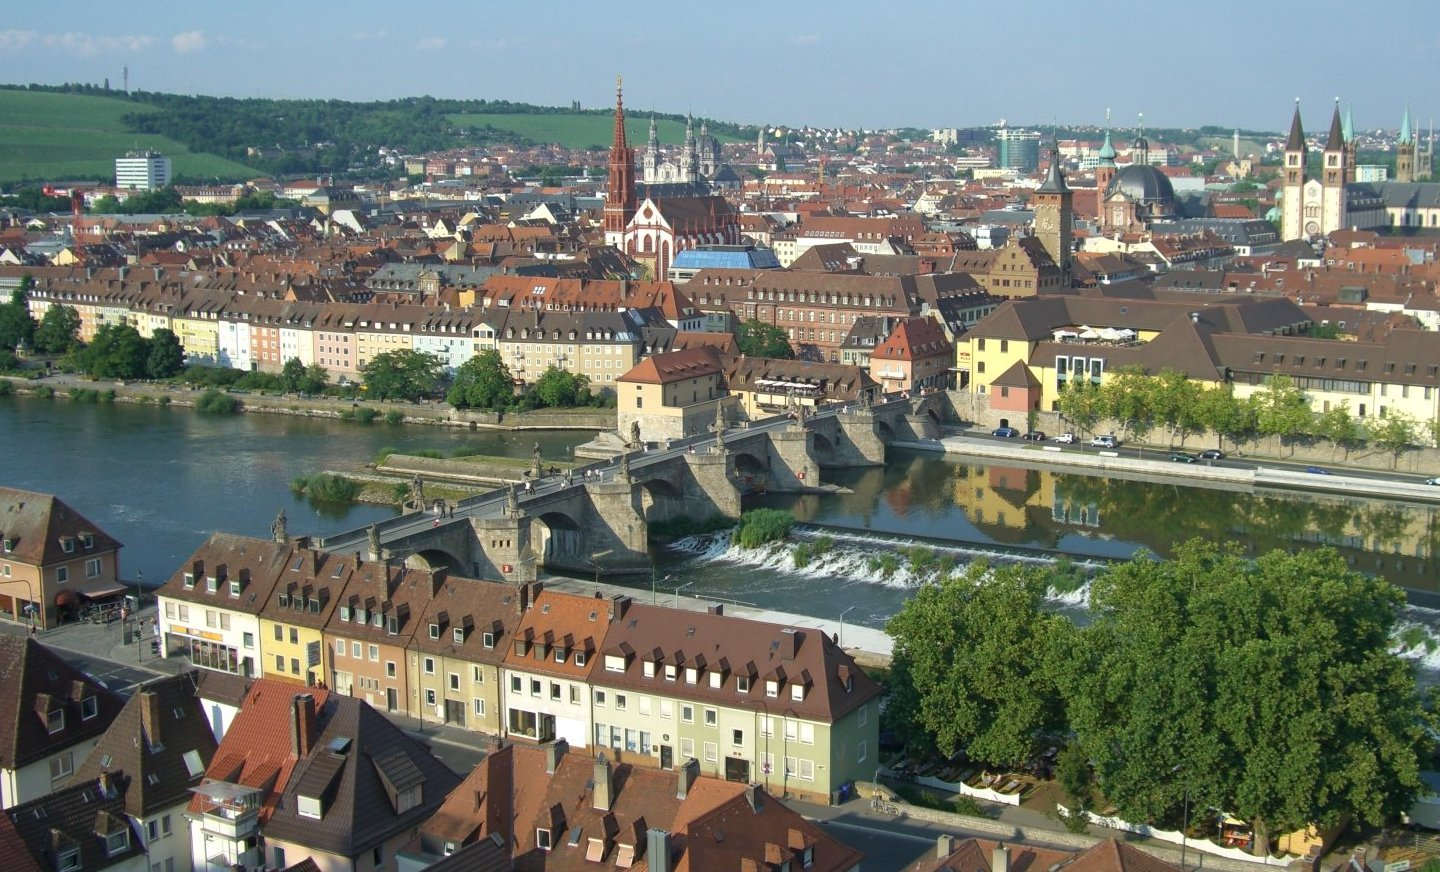 The city of Würzburg viewed from Fortress Marienberg